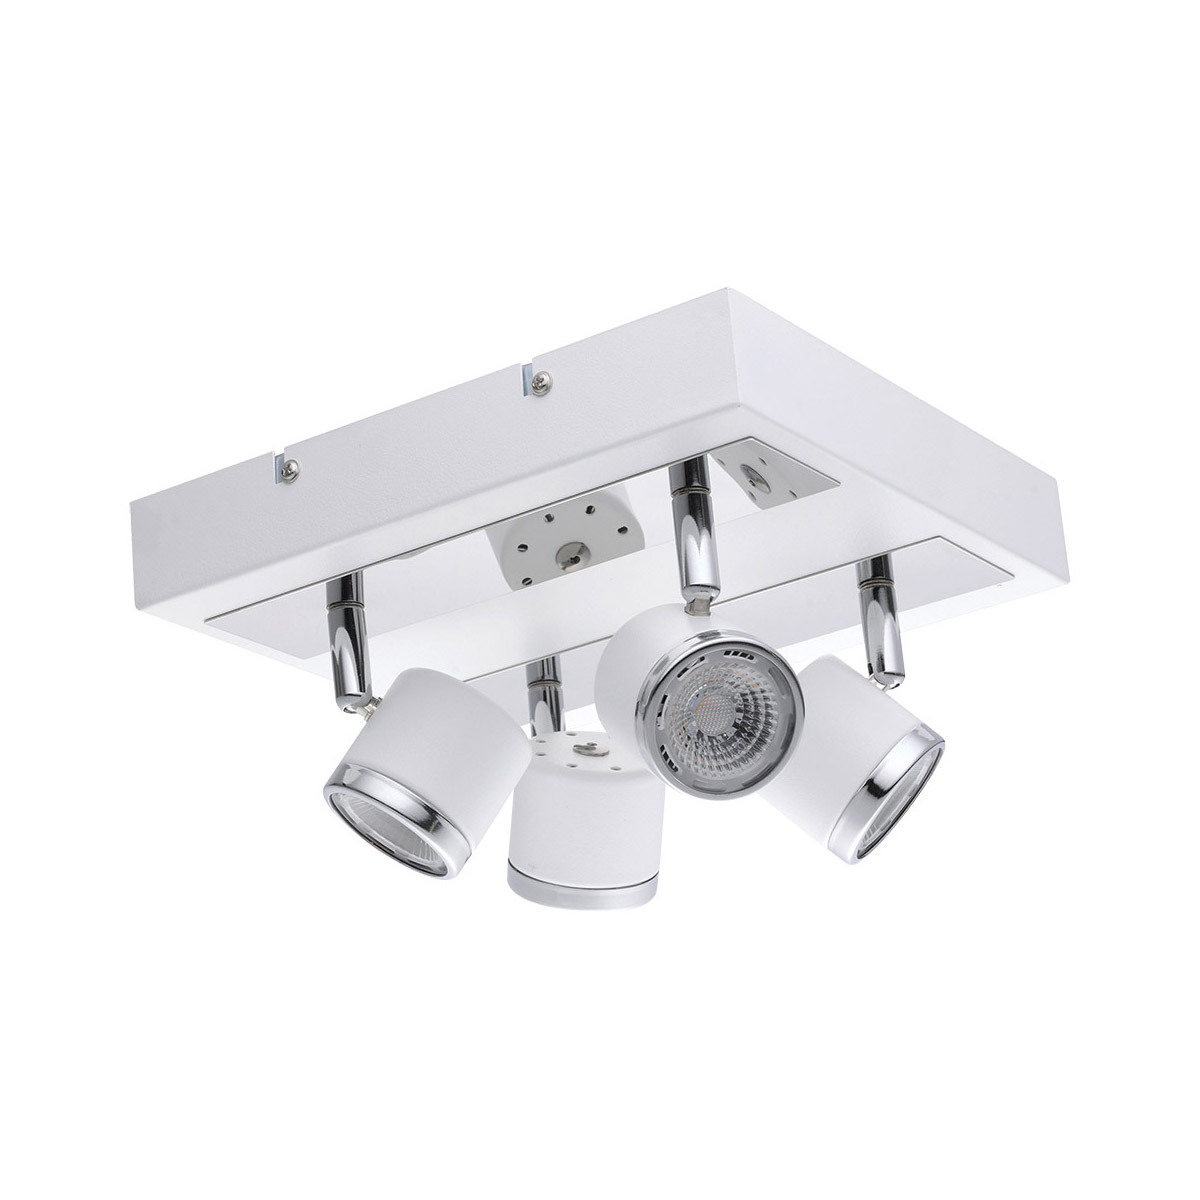 Rla Eglo Rl 195024 Track Lighting White